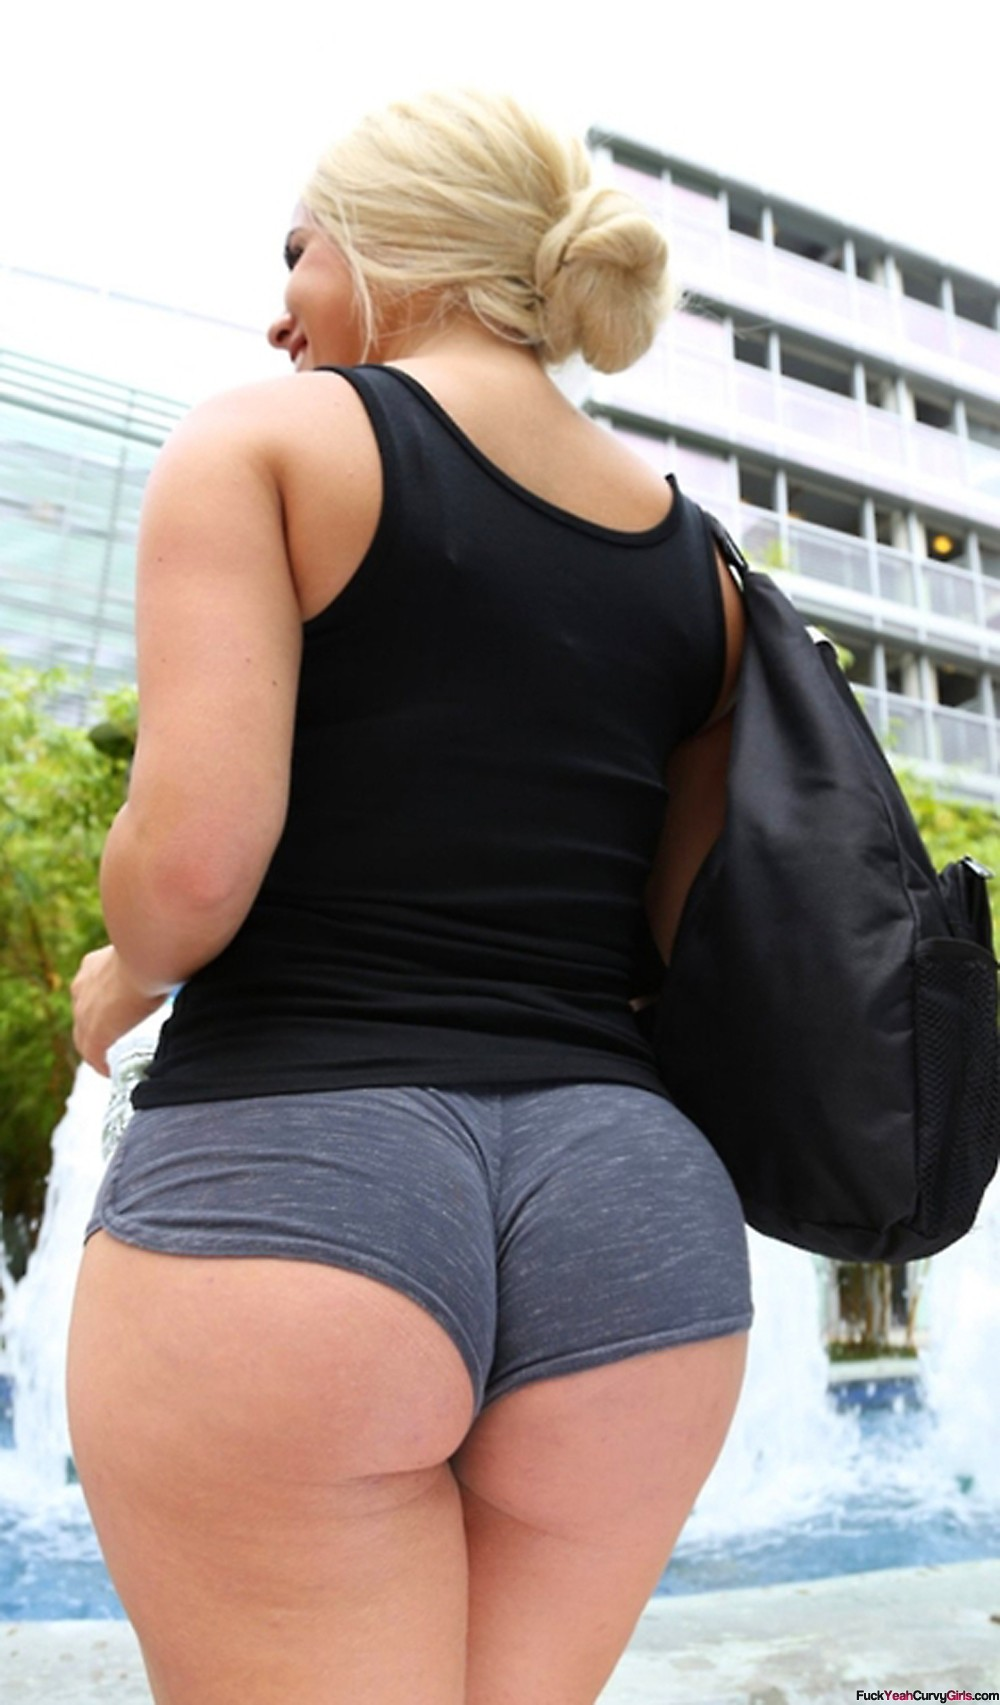 Consider, Sexy in booty shorts think